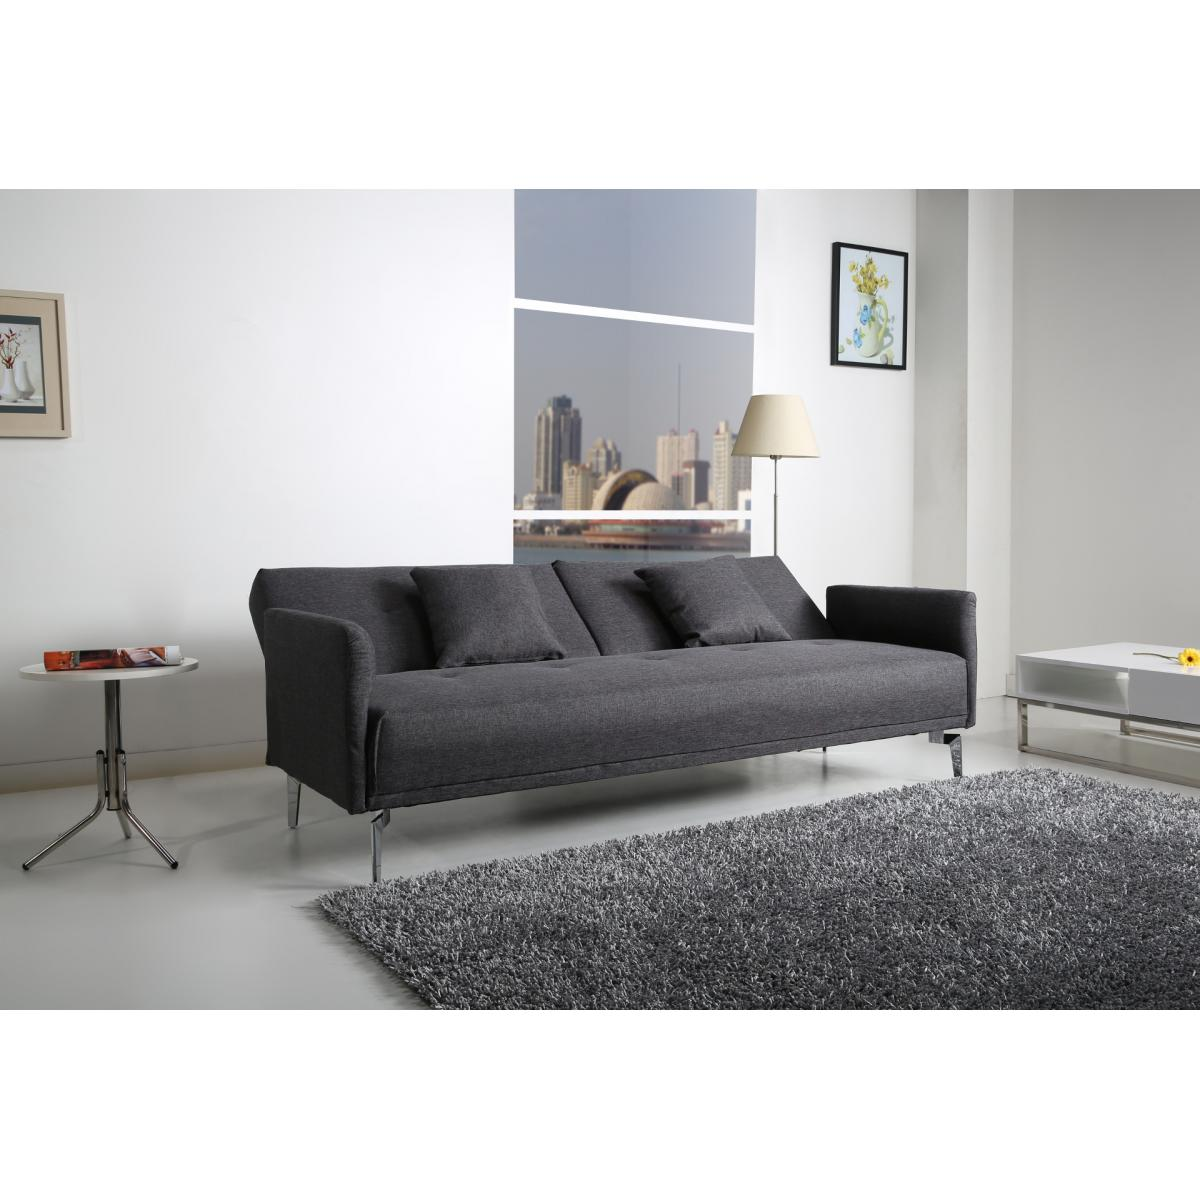 helsinki sofa dunkelgrau couch sofagarnitur schlafsofa. Black Bedroom Furniture Sets. Home Design Ideas